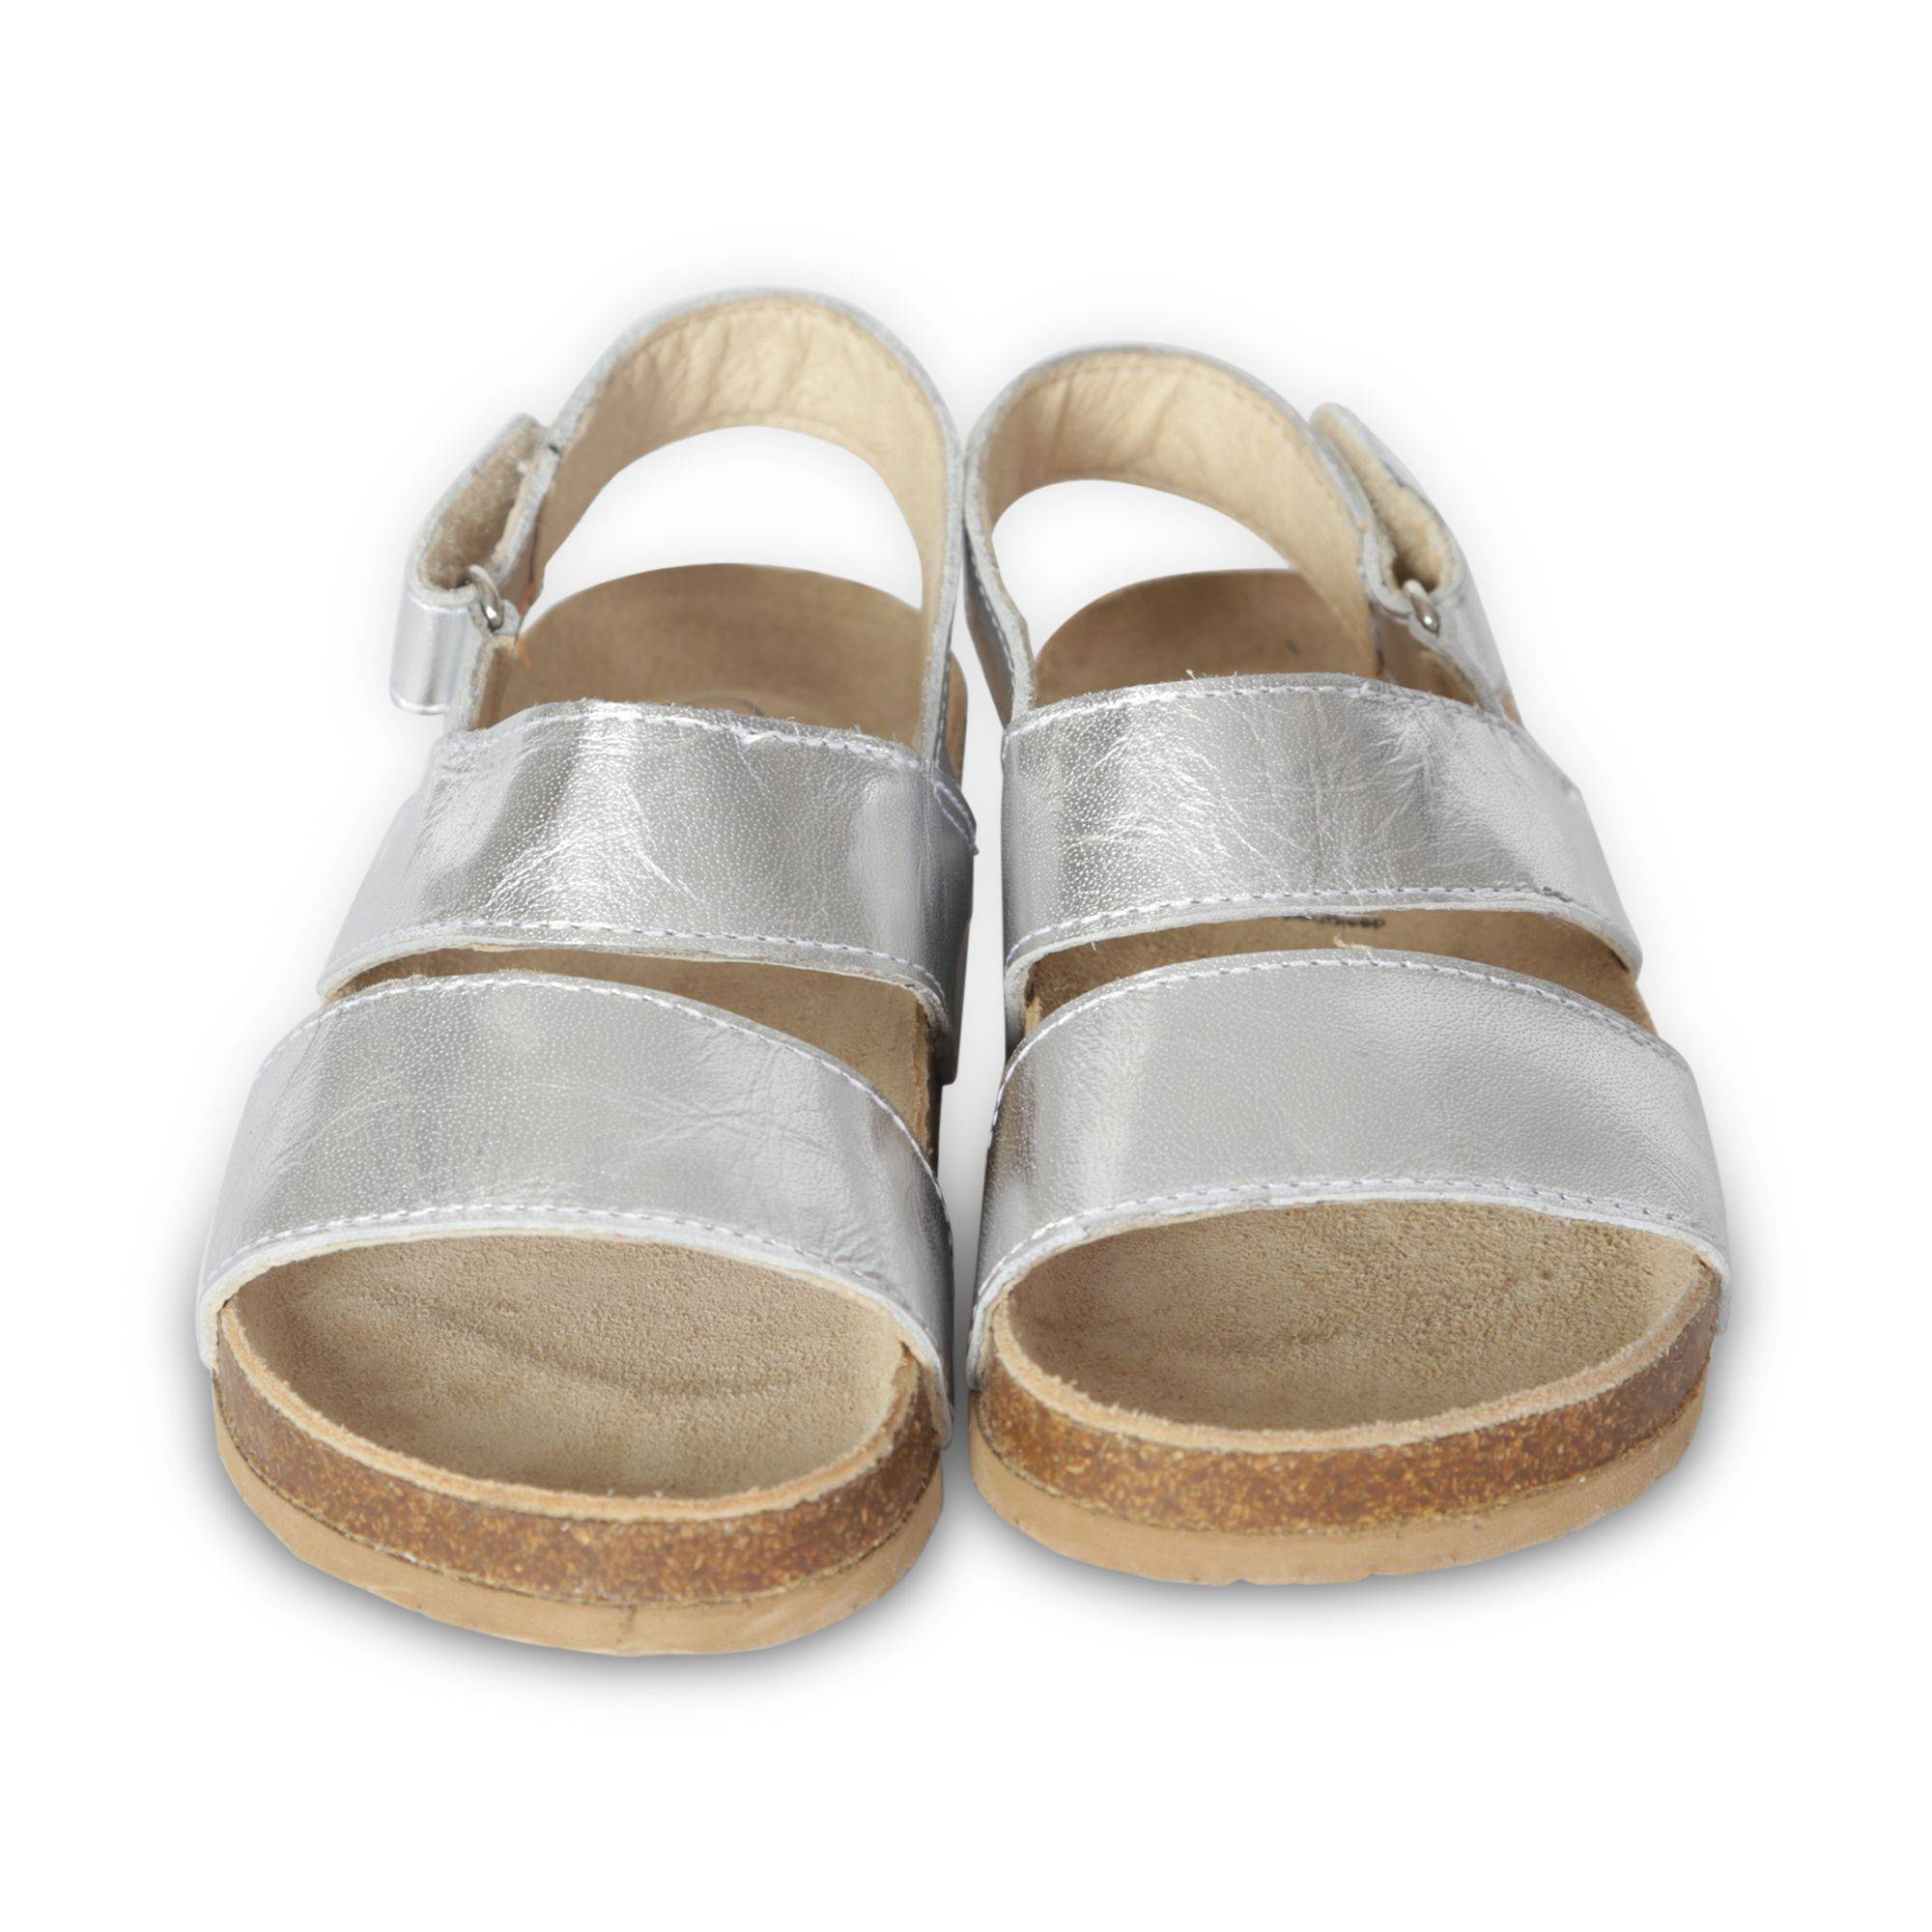 Old Soles Girls Sandal (10 jnr)